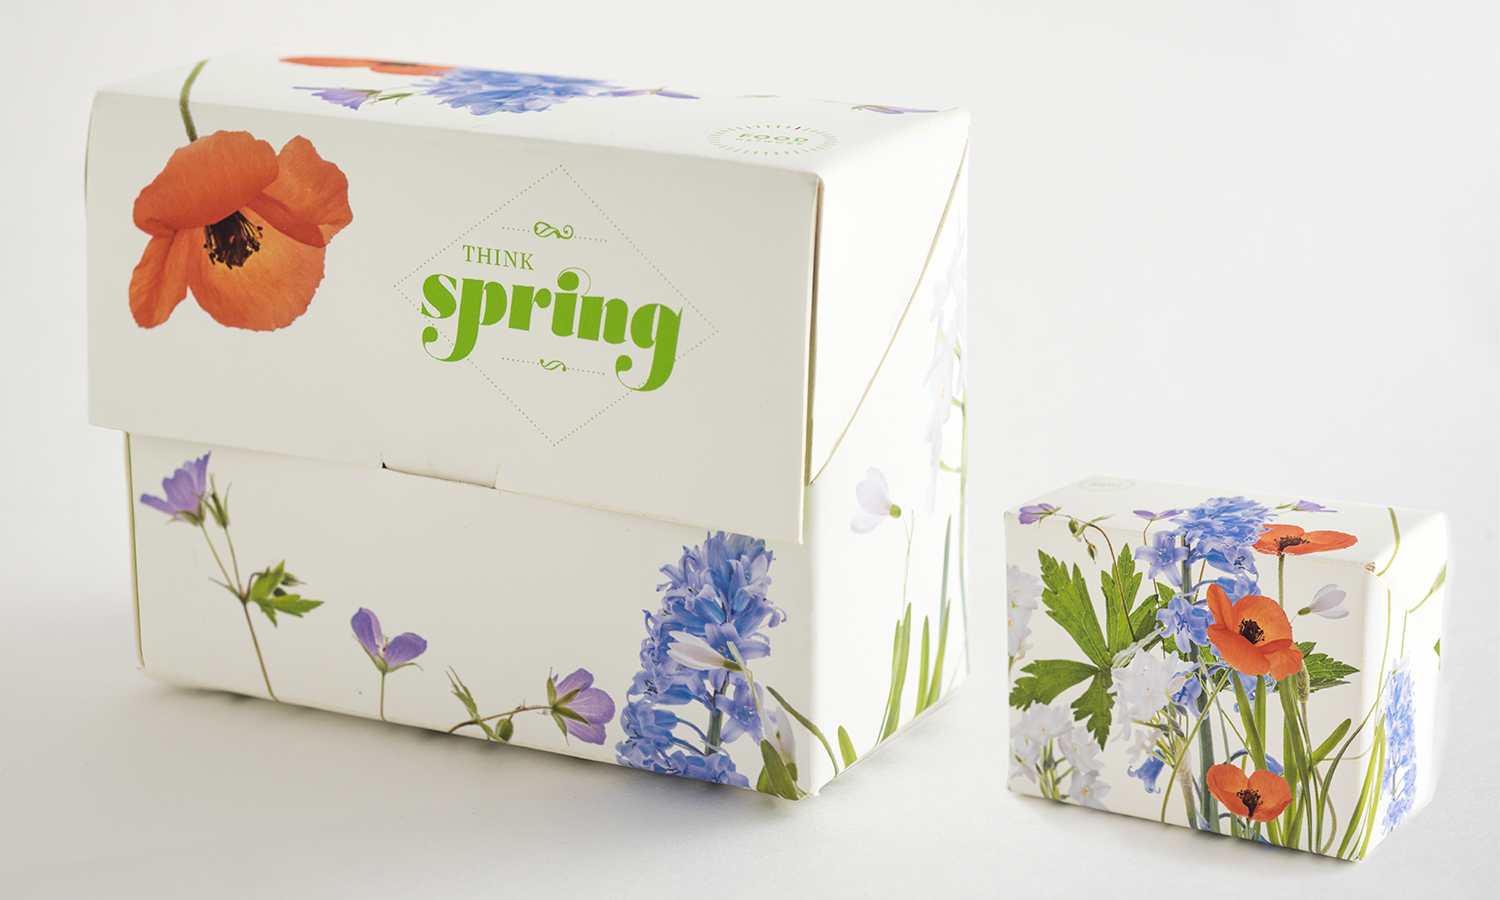 Closed front and back box of the Food Network Promo Pack (using new Logo Design). Since the Promo Pack was for the Spring Season, spring flowers were used for the outside of the box.